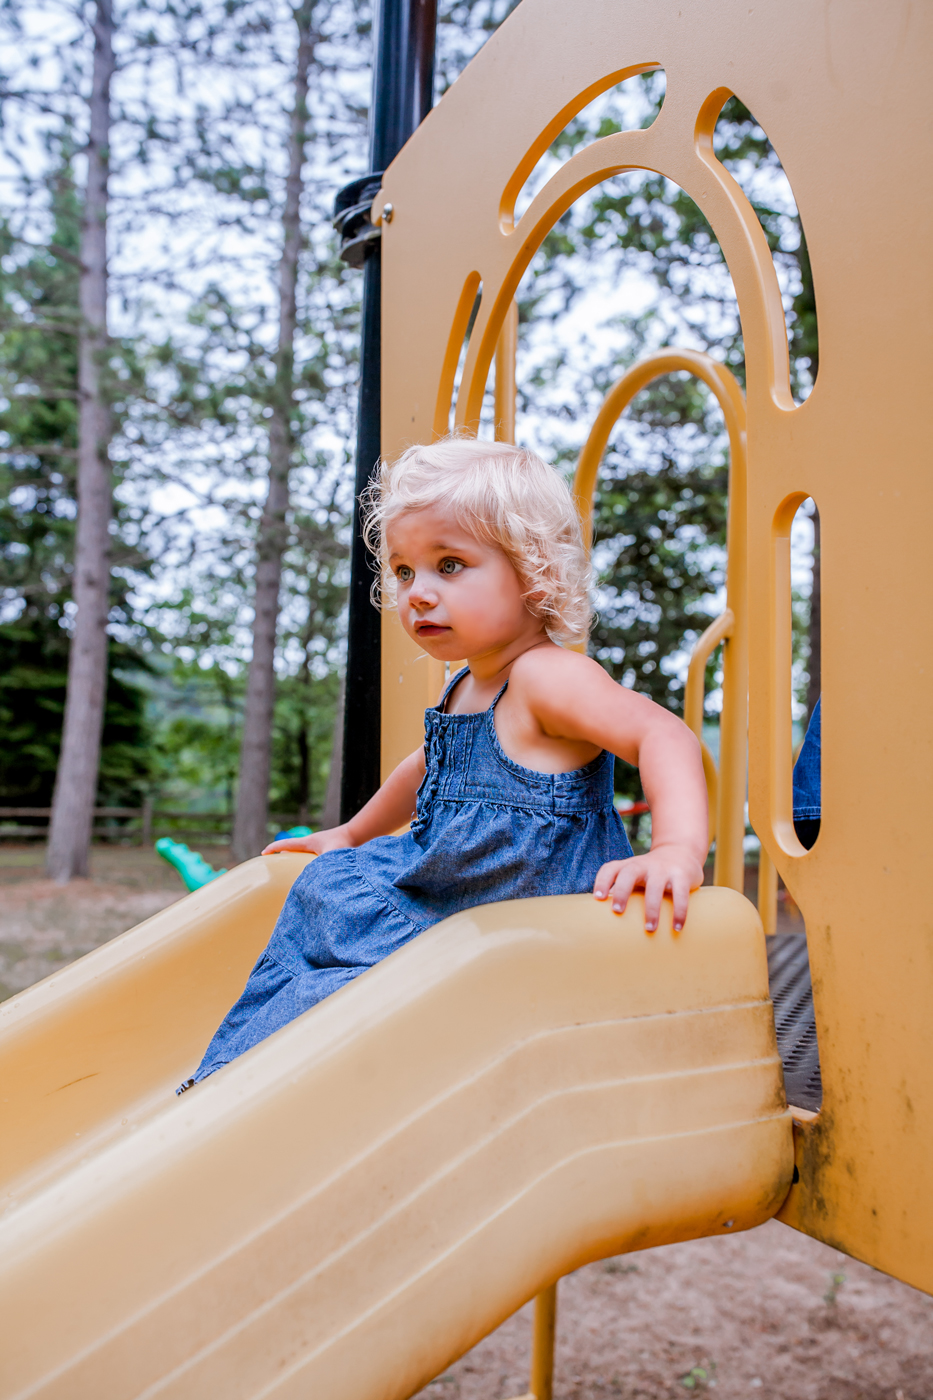 Toddler riding down the slide at playground Alcona State Park in Glennie, MI.